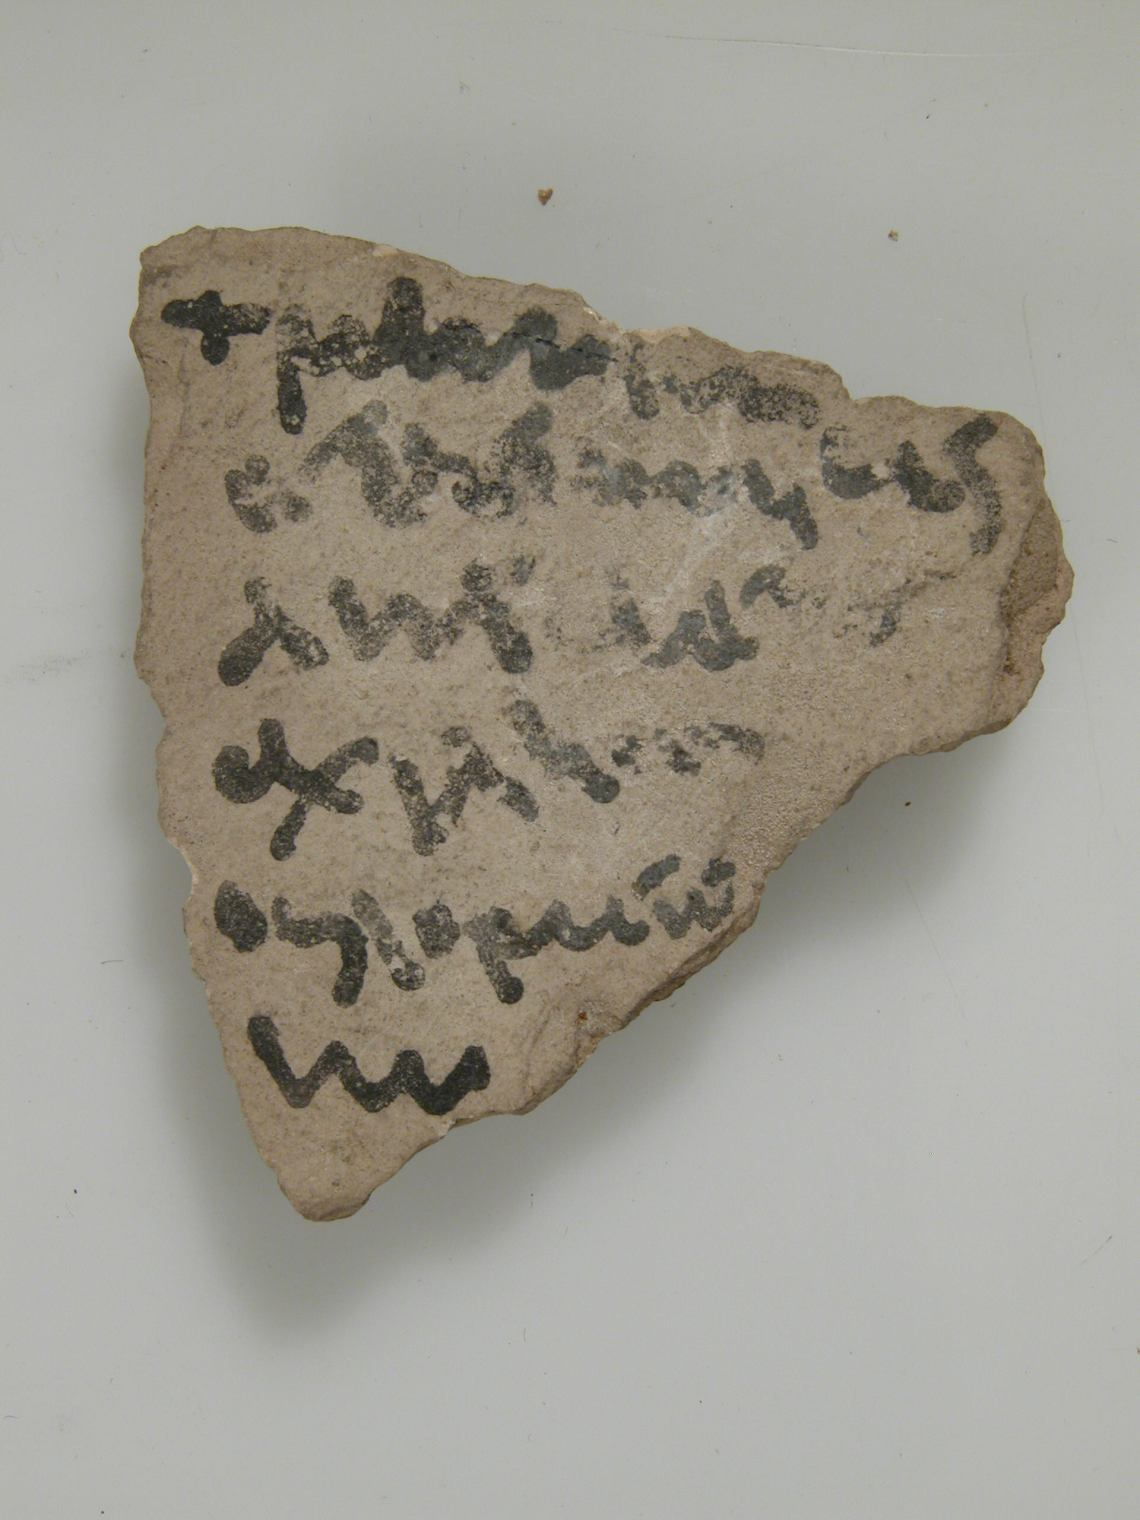 Ostracon With Lines From Homers Iliad In Coptic  Ce Thebes Now At The Metropolitan Museum Of Art In Nyc Cc